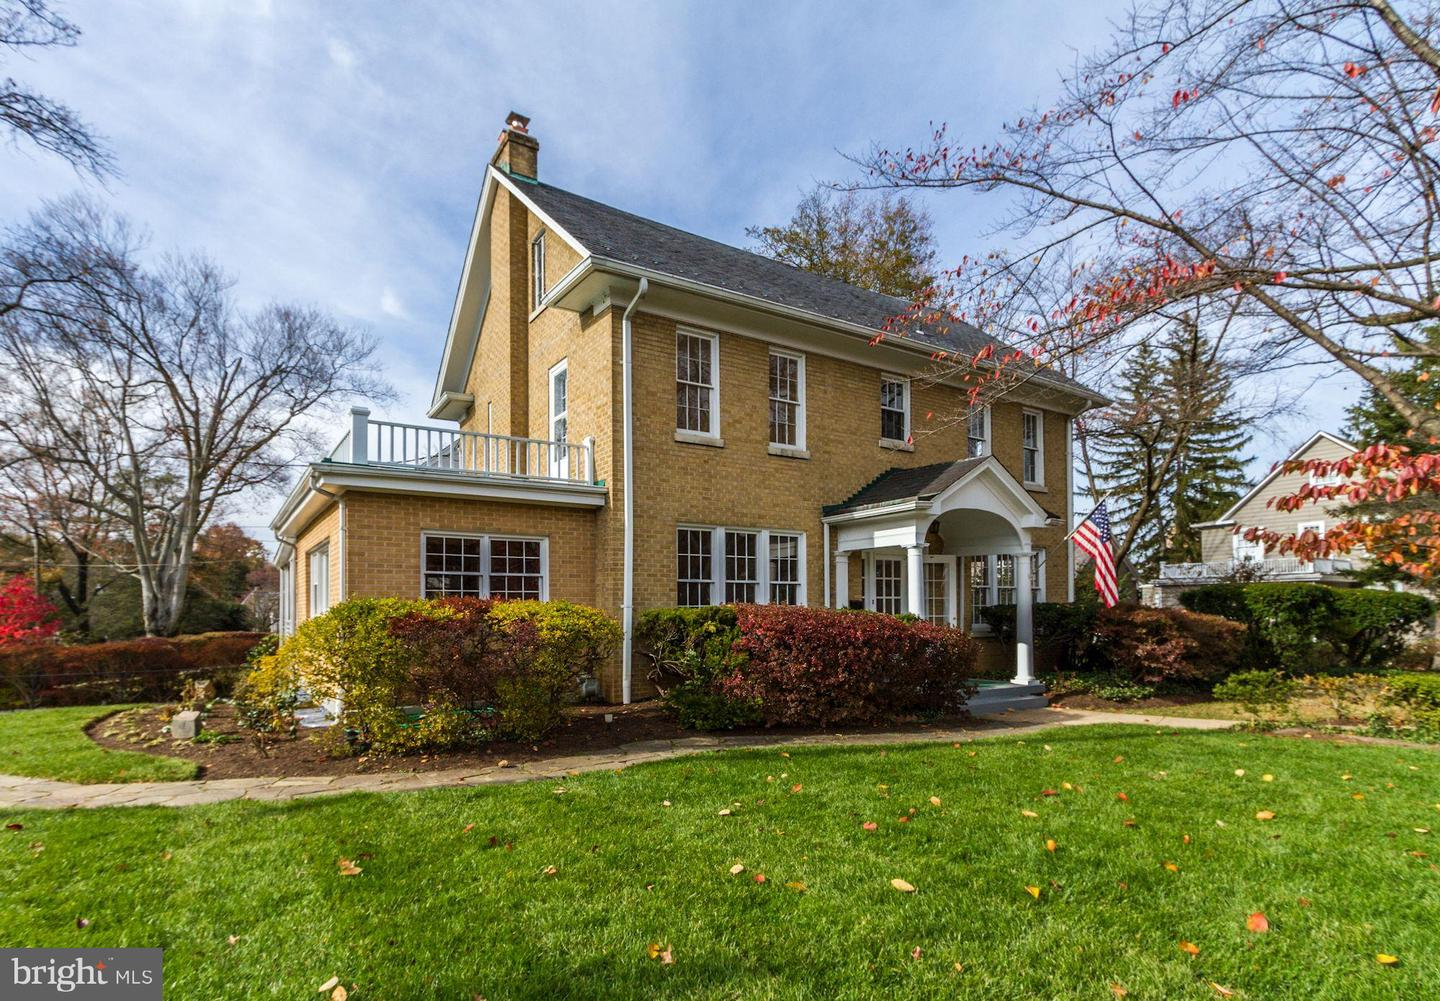 7500 CONNECTICUT AVENUE, CHEVY CHASE, Maryland